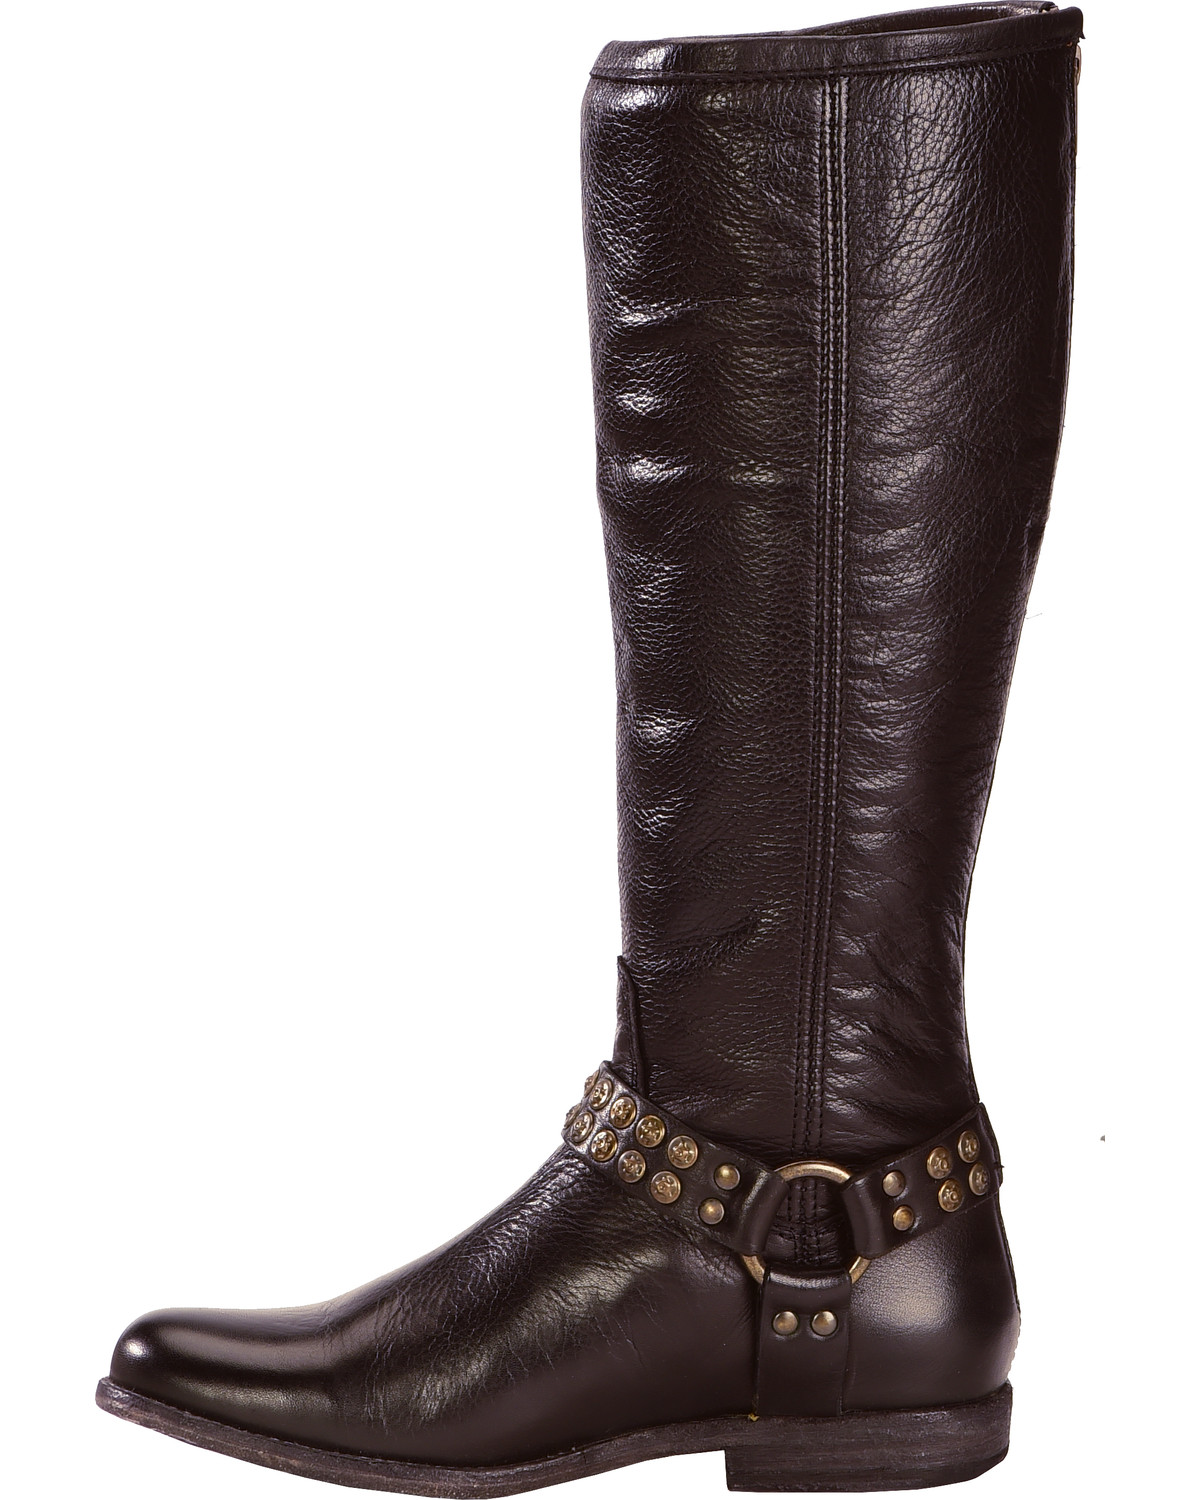 Women's Boots: Free Shipping on orders over $45 at Find the latest styles of Shoes from download-free-carlos.tk Your Online Women's Shoes Store! Get 5% in rewards with Club O!